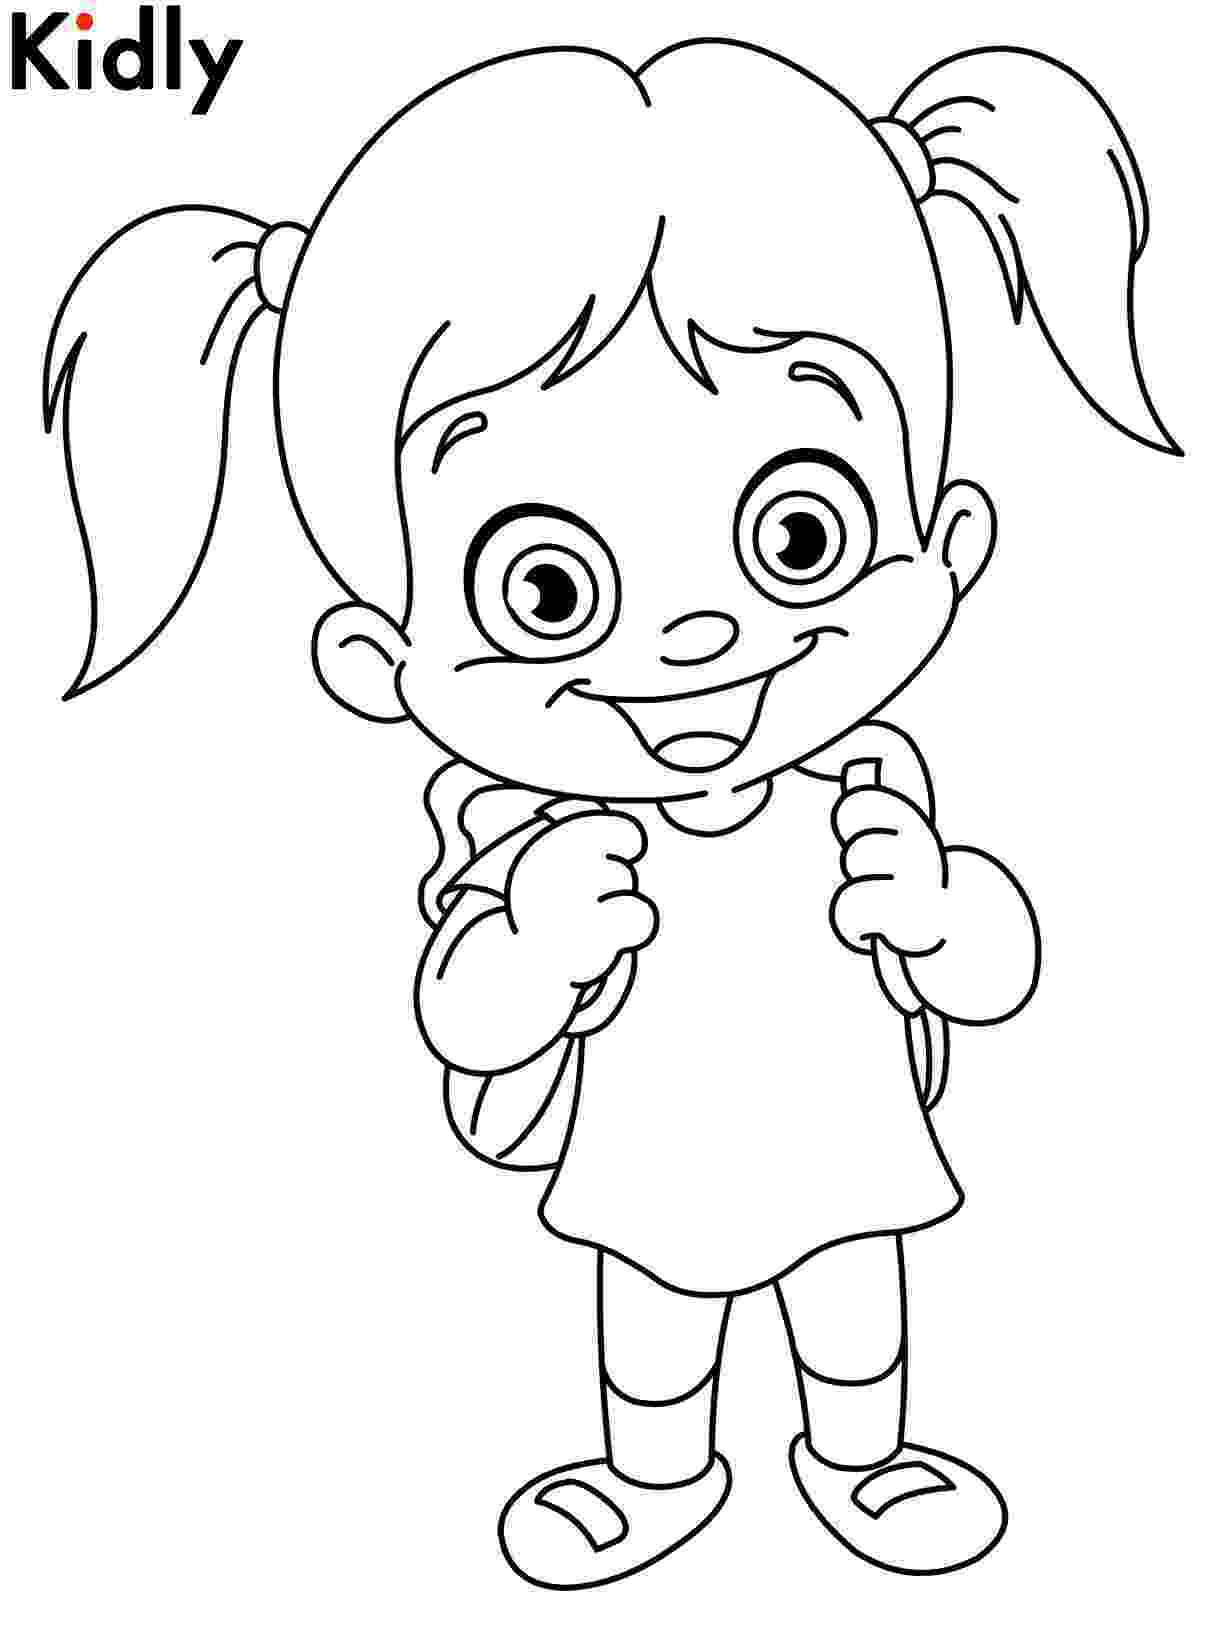 girl coloring sheets coloring pages for girls best coloring pages for kids coloring sheets girl